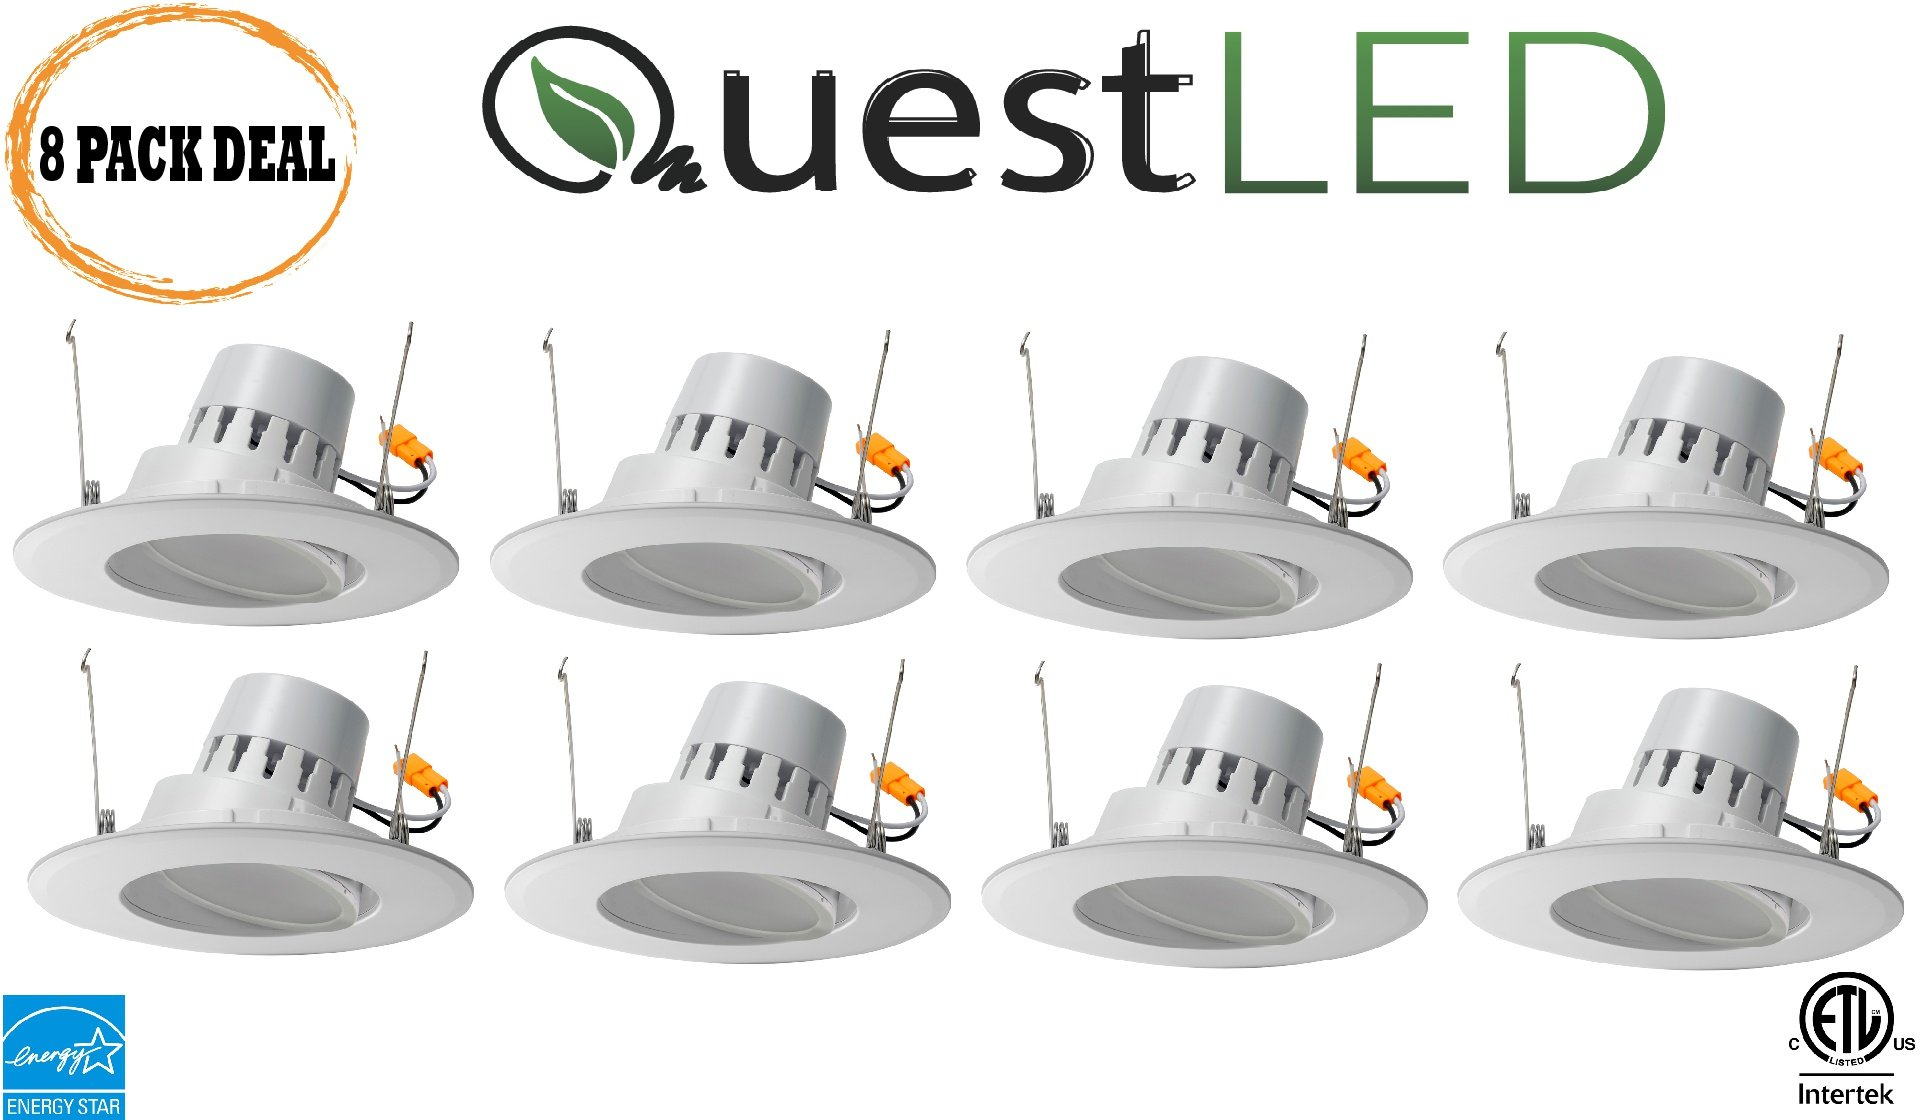 Quest Premium LED 5/6 Inch 16.5W, 3000K Adjustable Rotating Downlight Retrofit Recessed (100w Equivalent) 1200Lumens 120V Flood; HIGH CR >90I; Damp Location; 5 Yr Warranty ETL Energy Star- 8 Pack by Quest